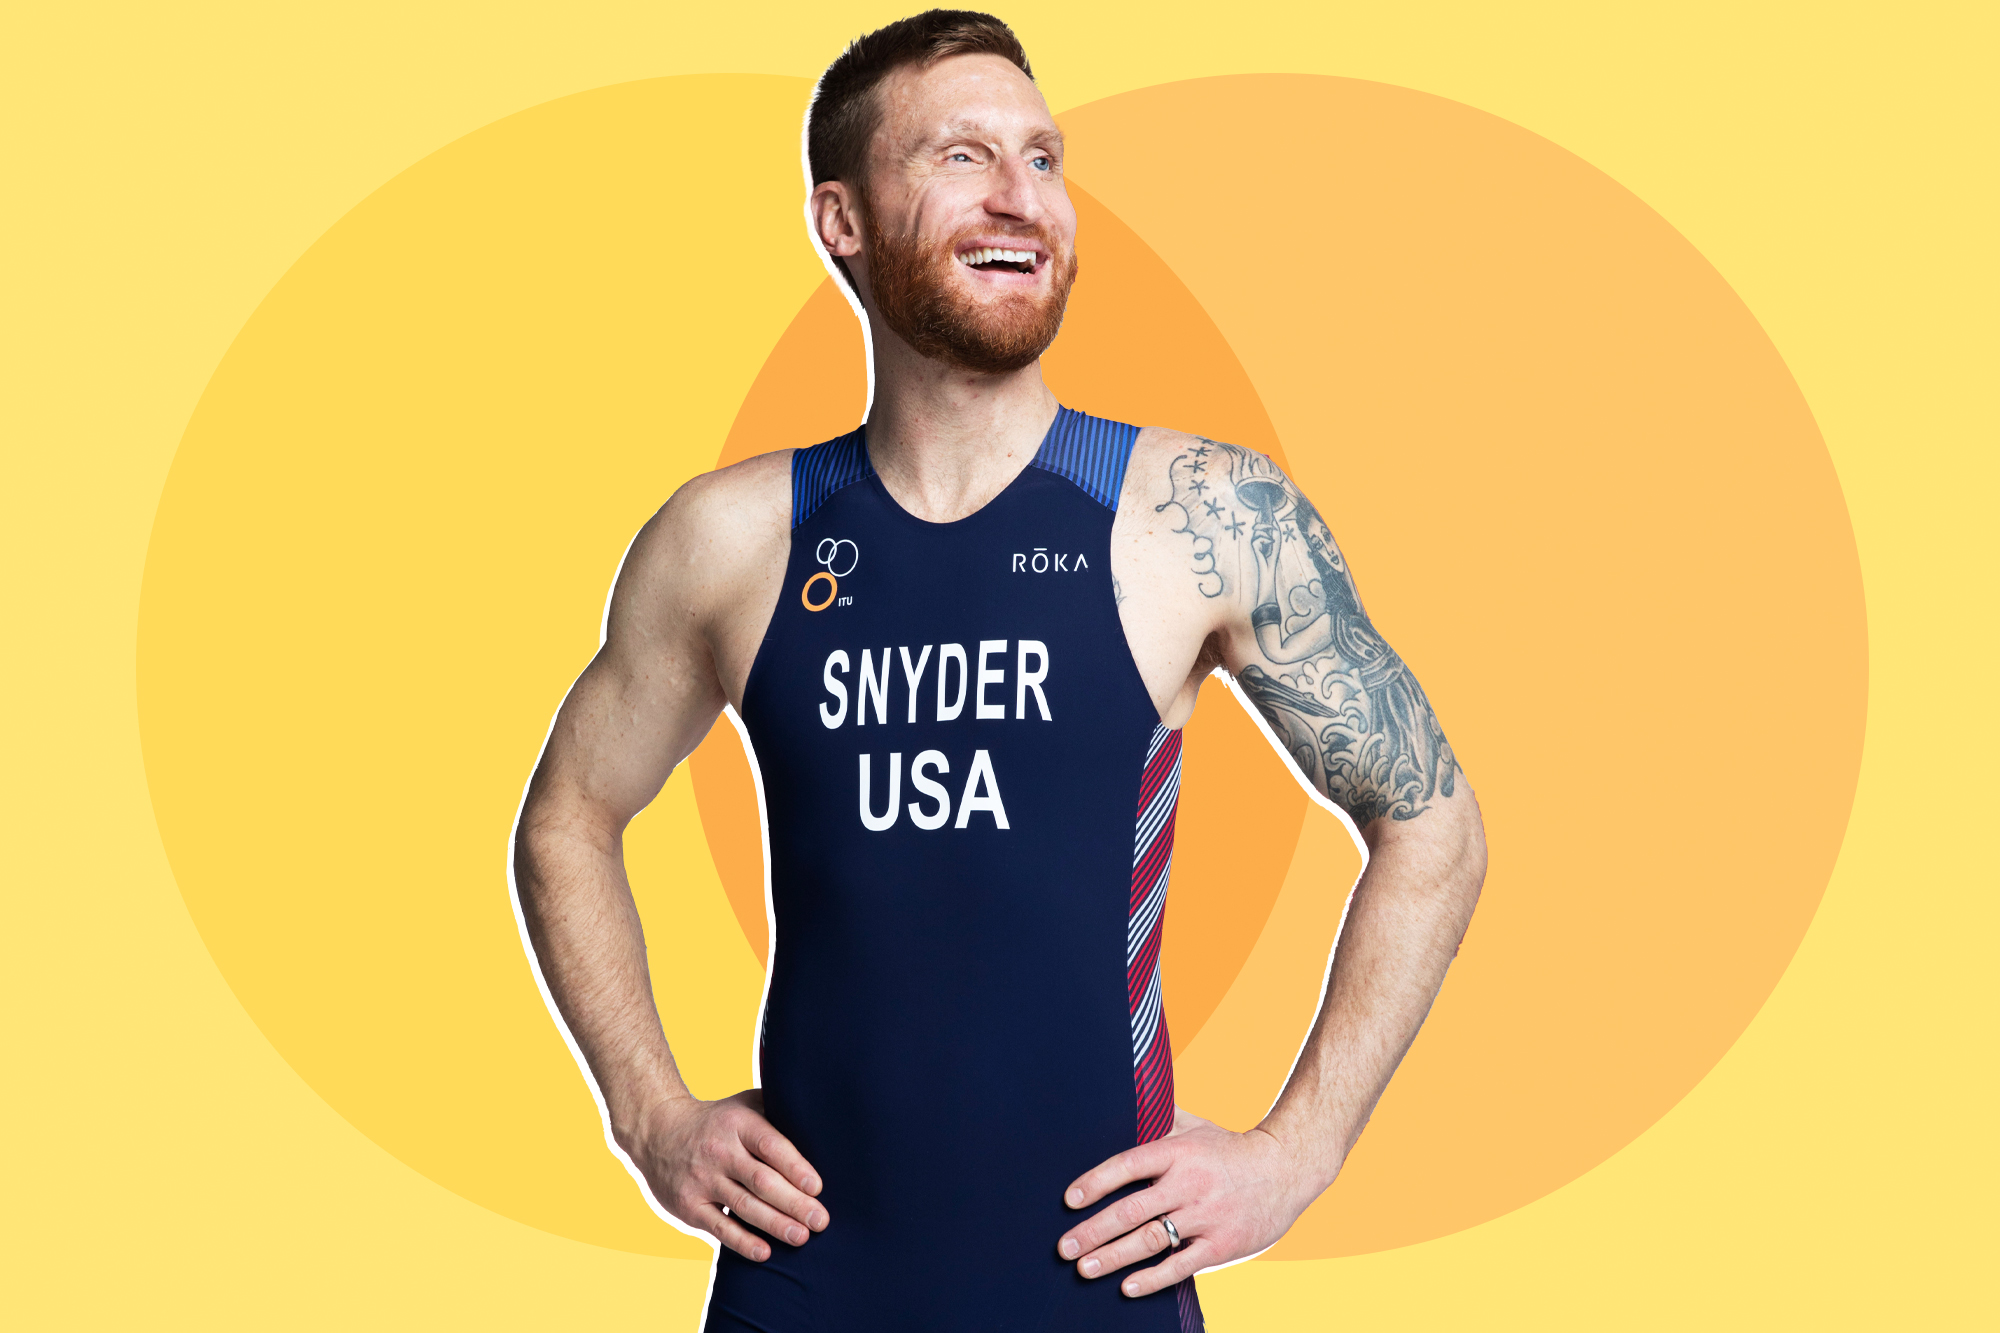 paralympic athlete Brad Snyder on a designed background